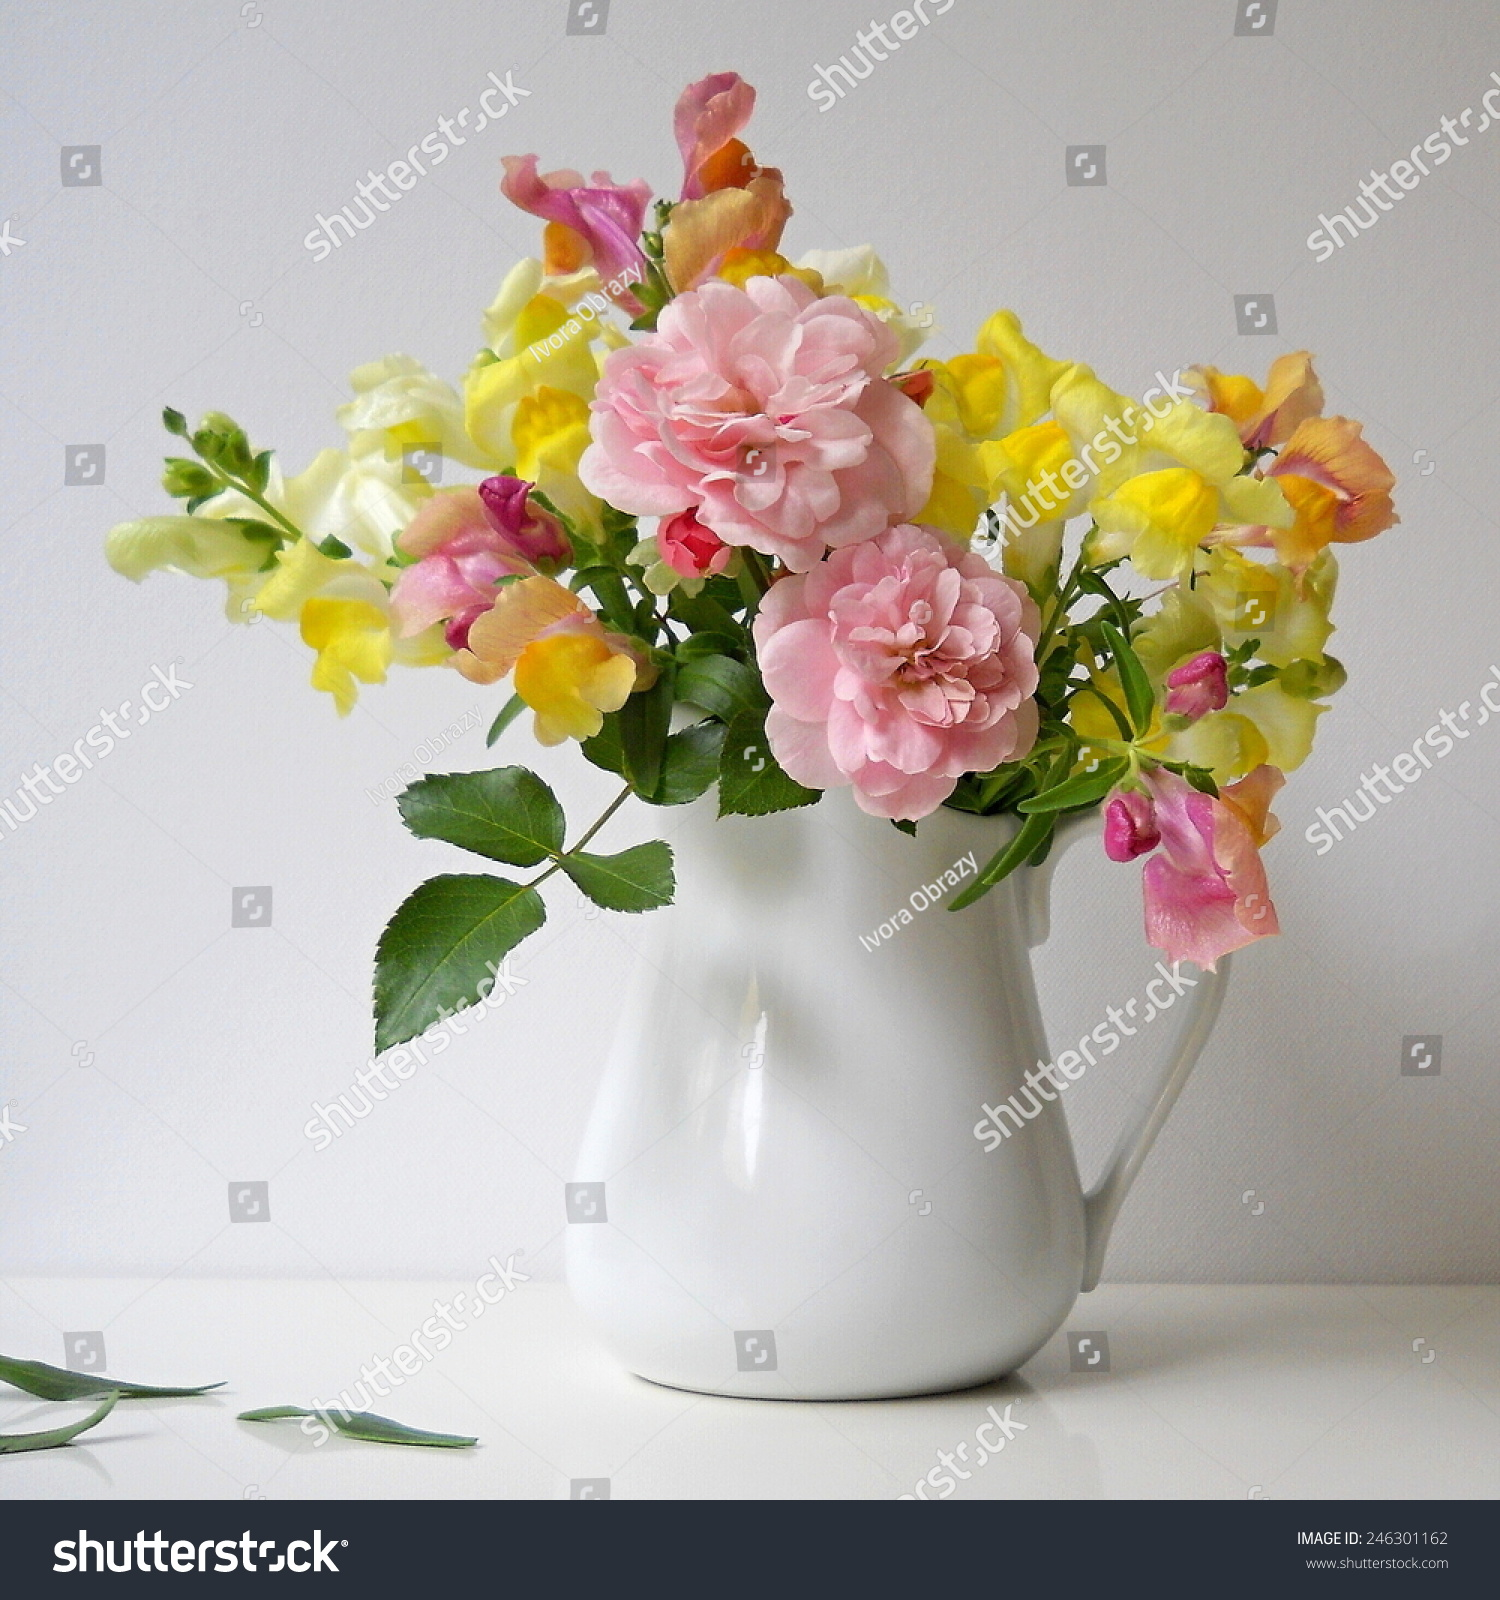 Royalty Free Bouquet Of Snapdragon Flowers And Roses 246301162